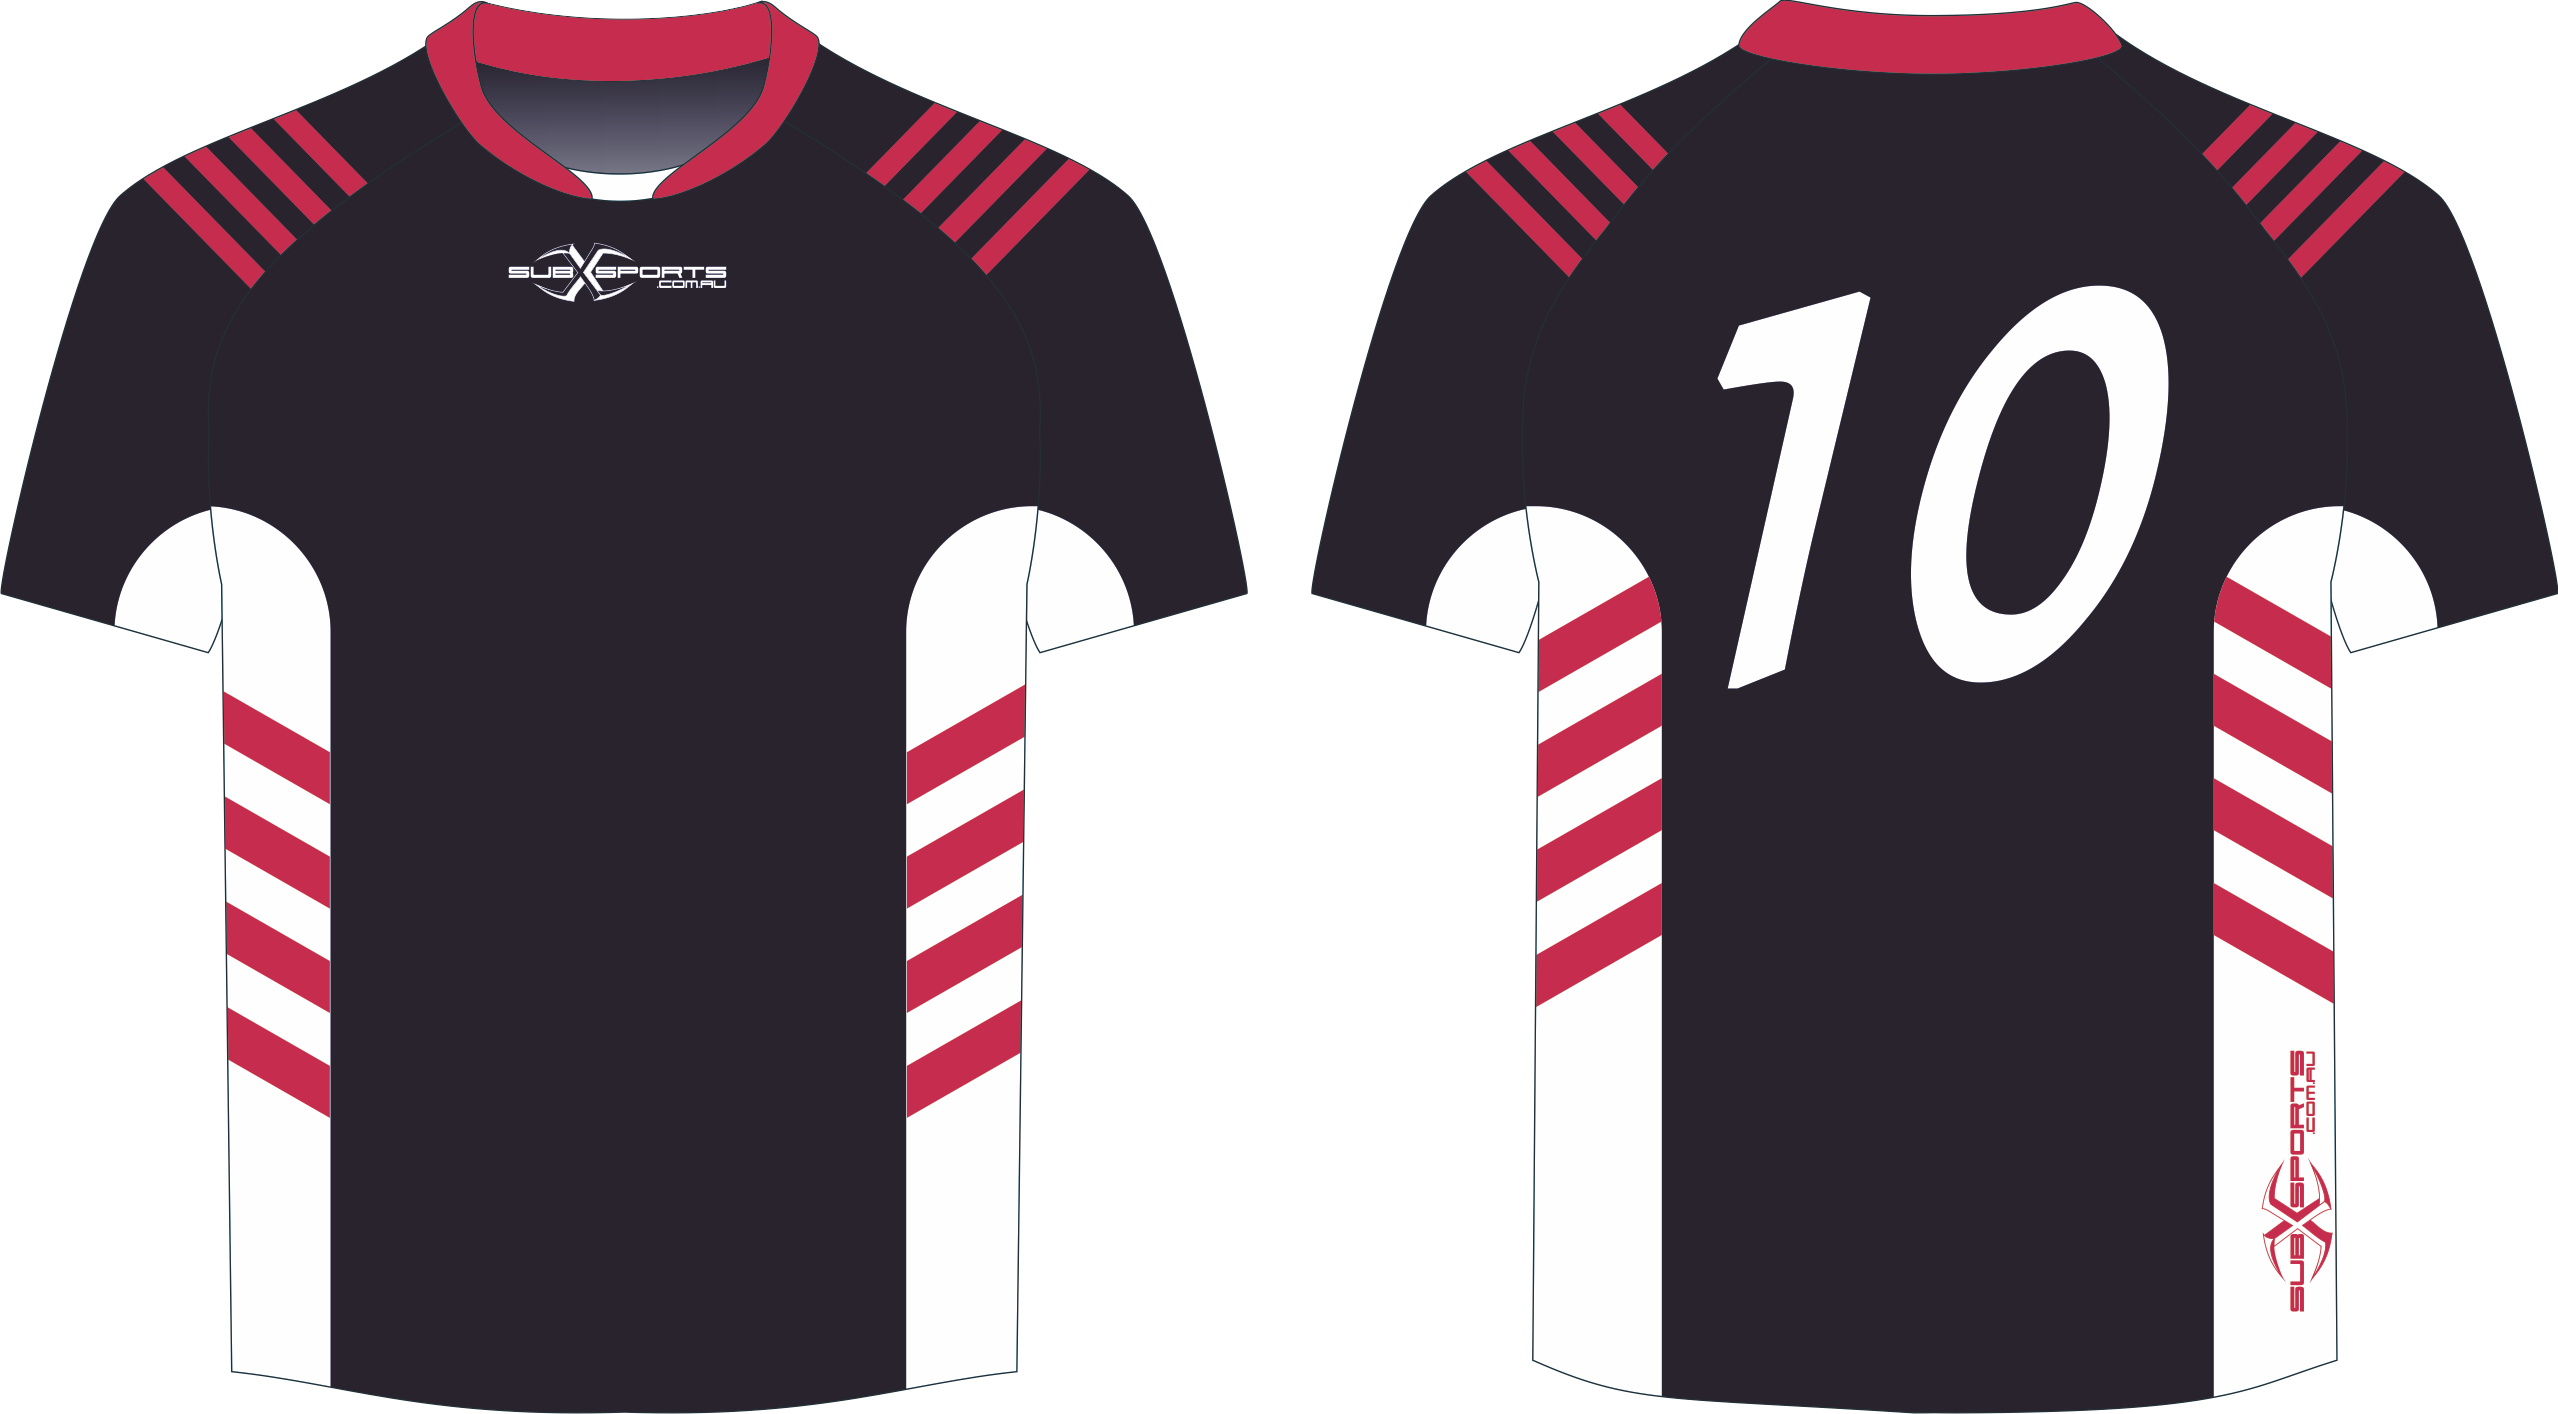 S204XJ Jersey Black Red White.png